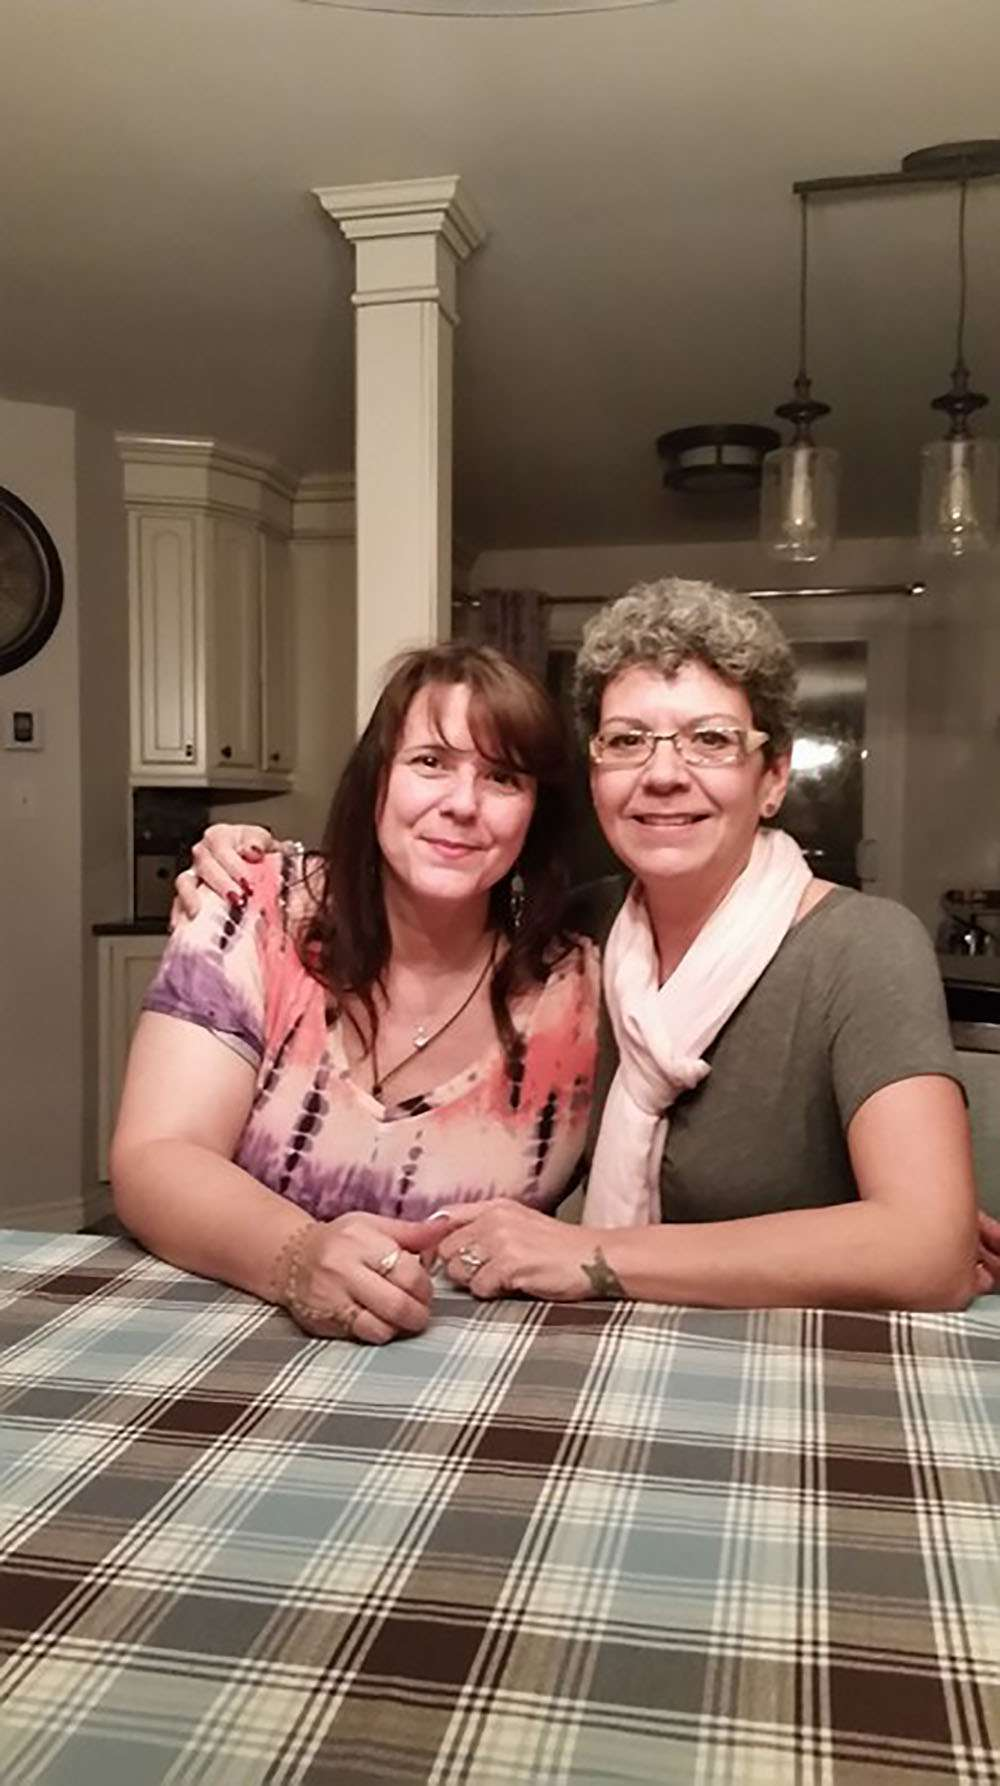 Tealey Normandin and her biological sister Denise Chenel were adopted outside of Kahnawake during the Sixties Scoop. (Courtesy Tealey Normandin)